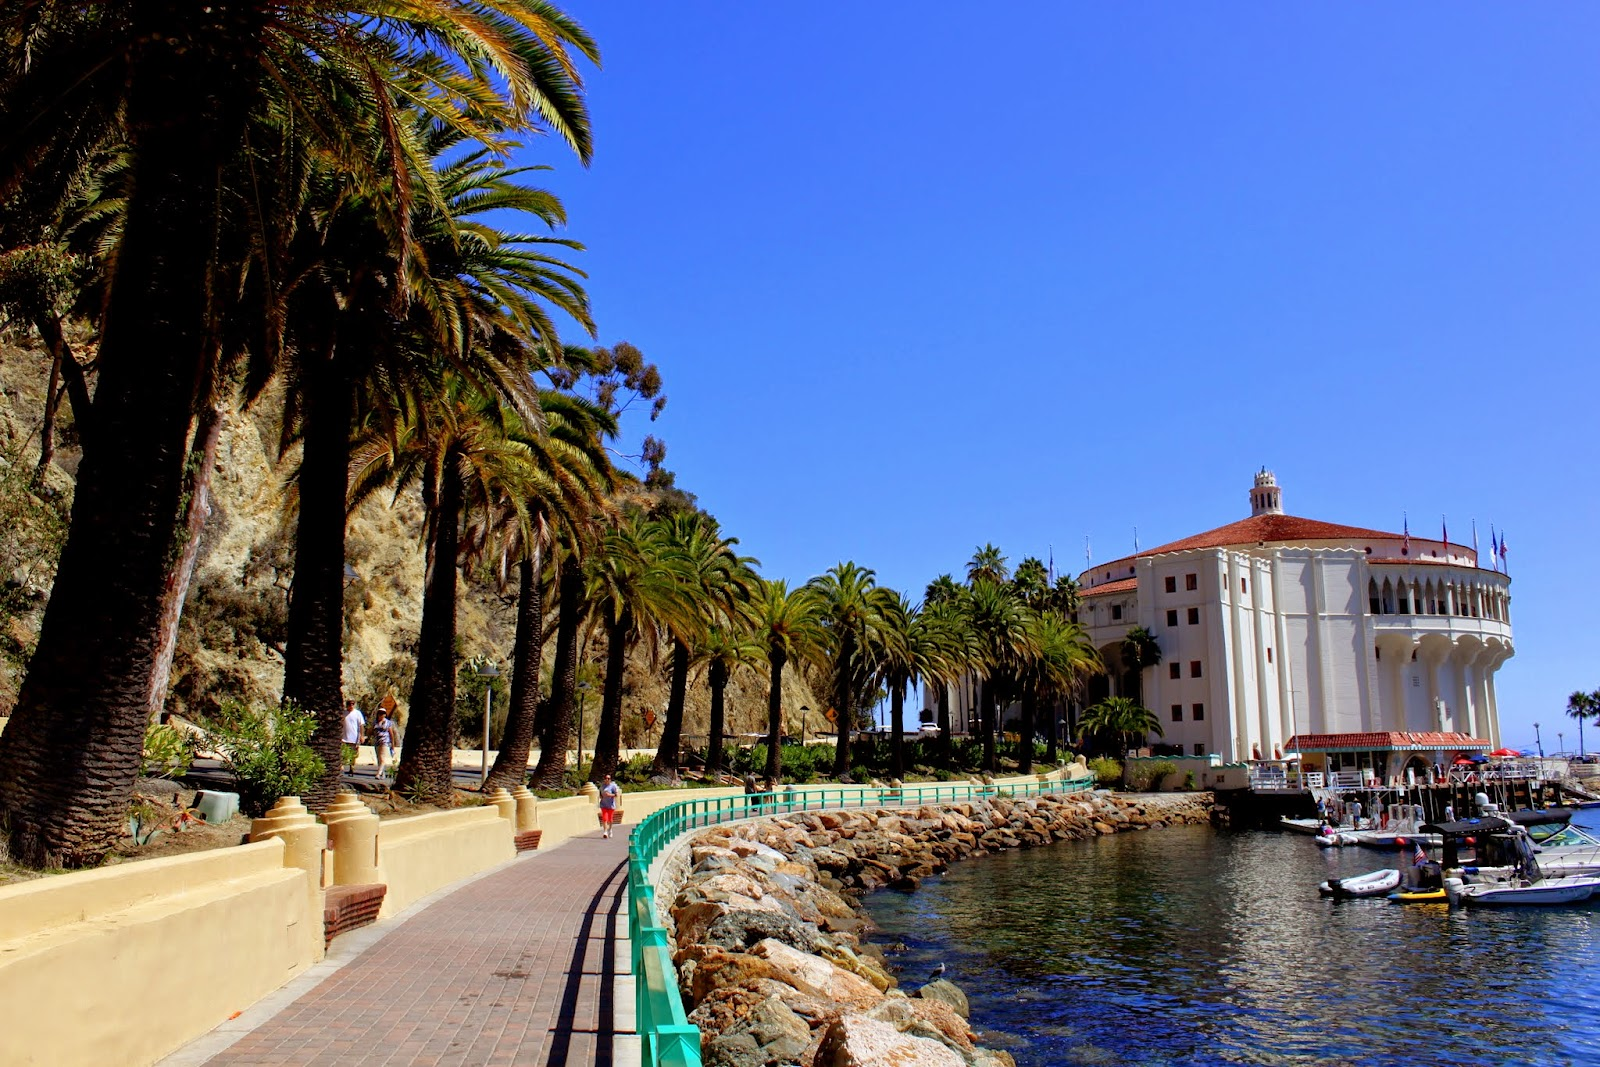 Santa Catalina Island, California, Casino